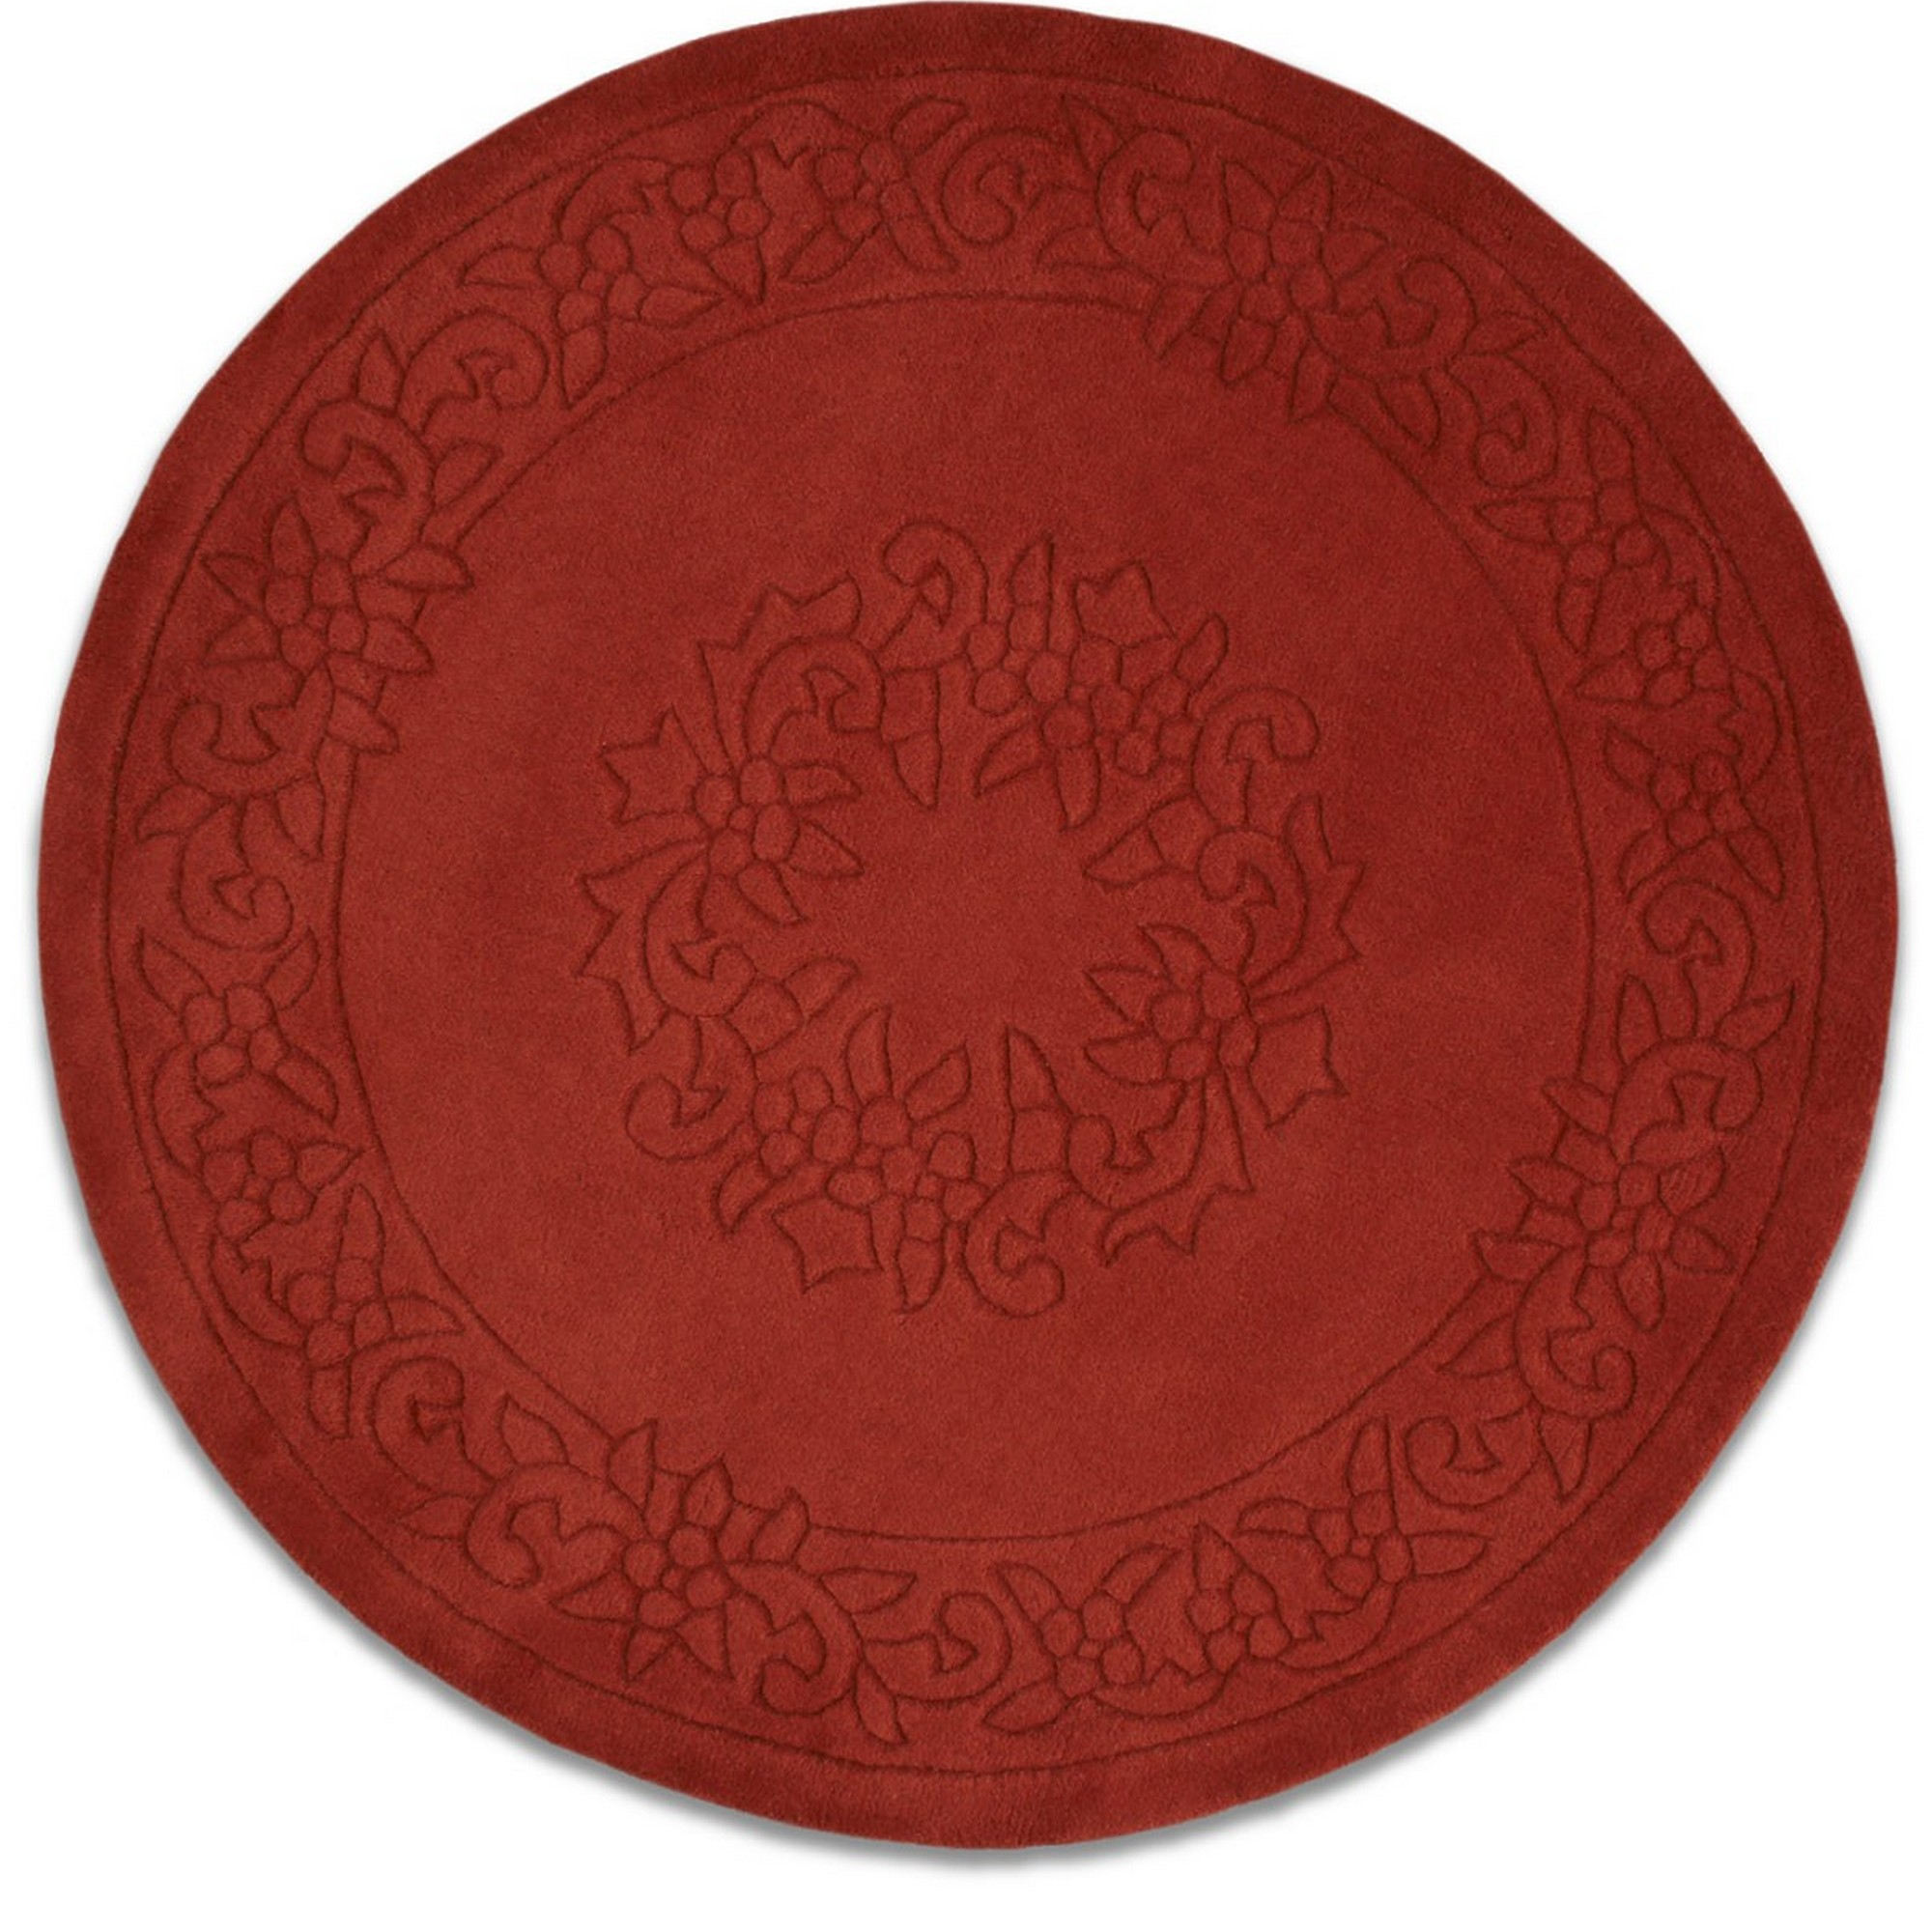 Royale Circular Rugs - Traditional Indian Wool in Rust